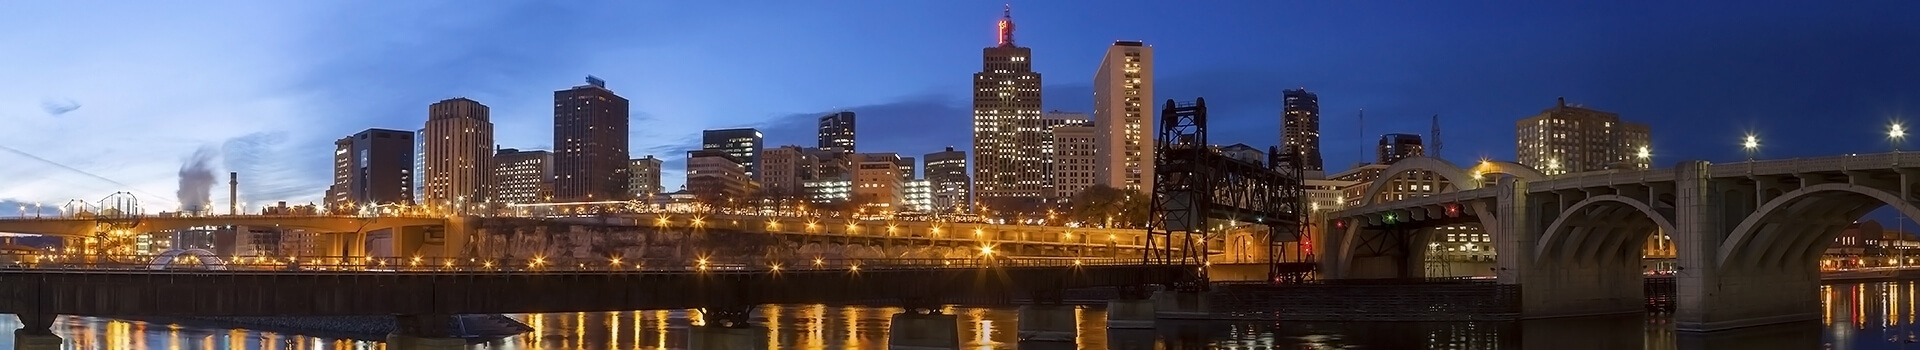 Best 10 Real Estate Agents in Twin Cities, Minnesota